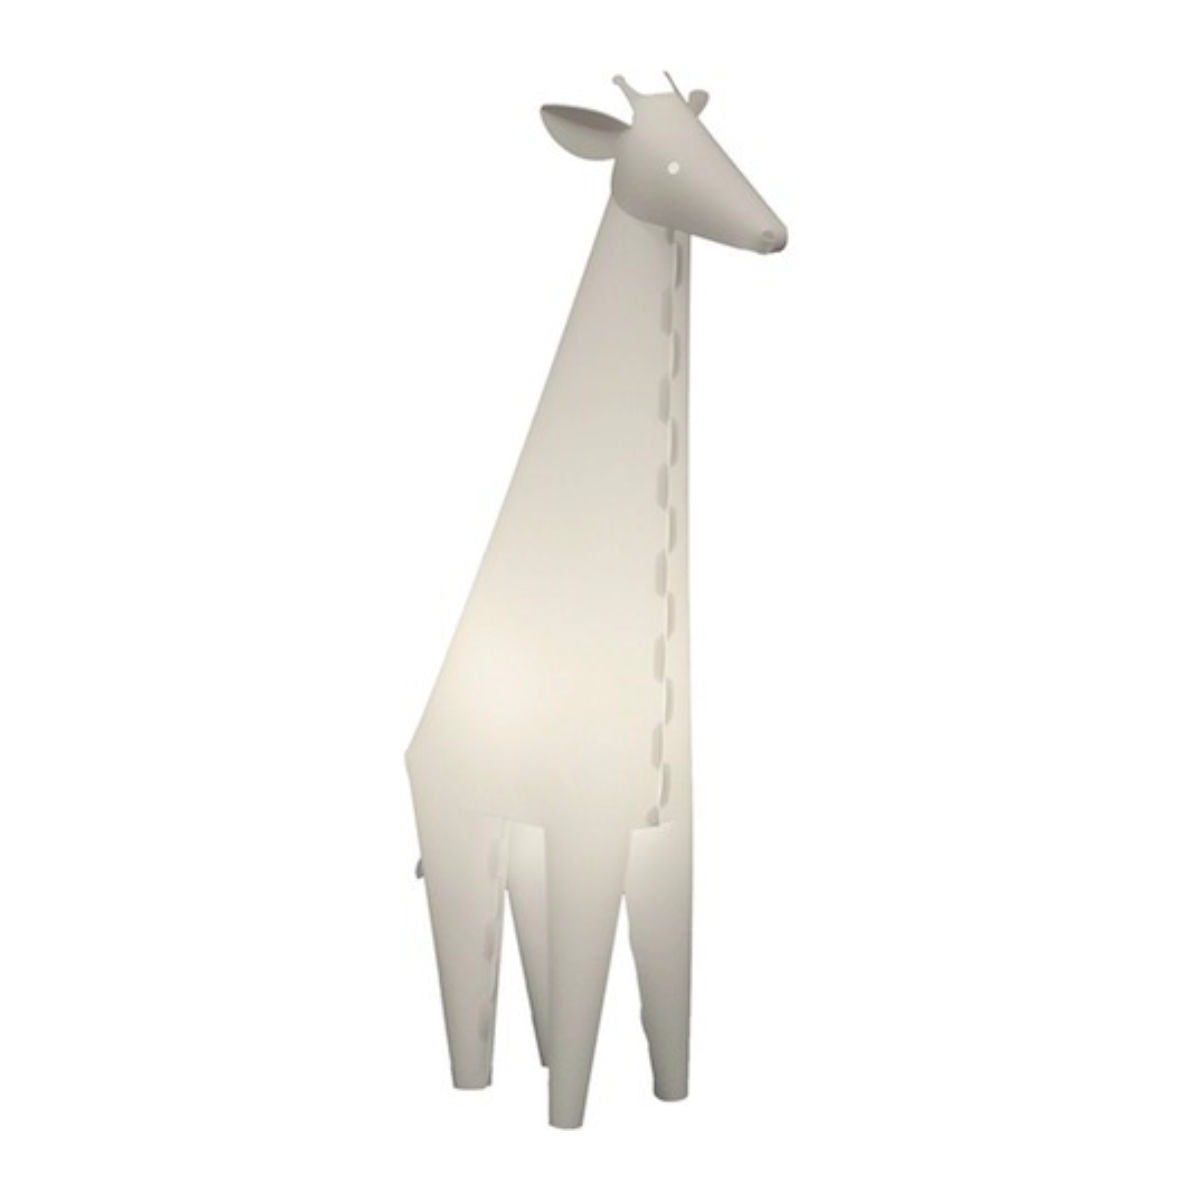 Zoolight DIY led light, giraffe